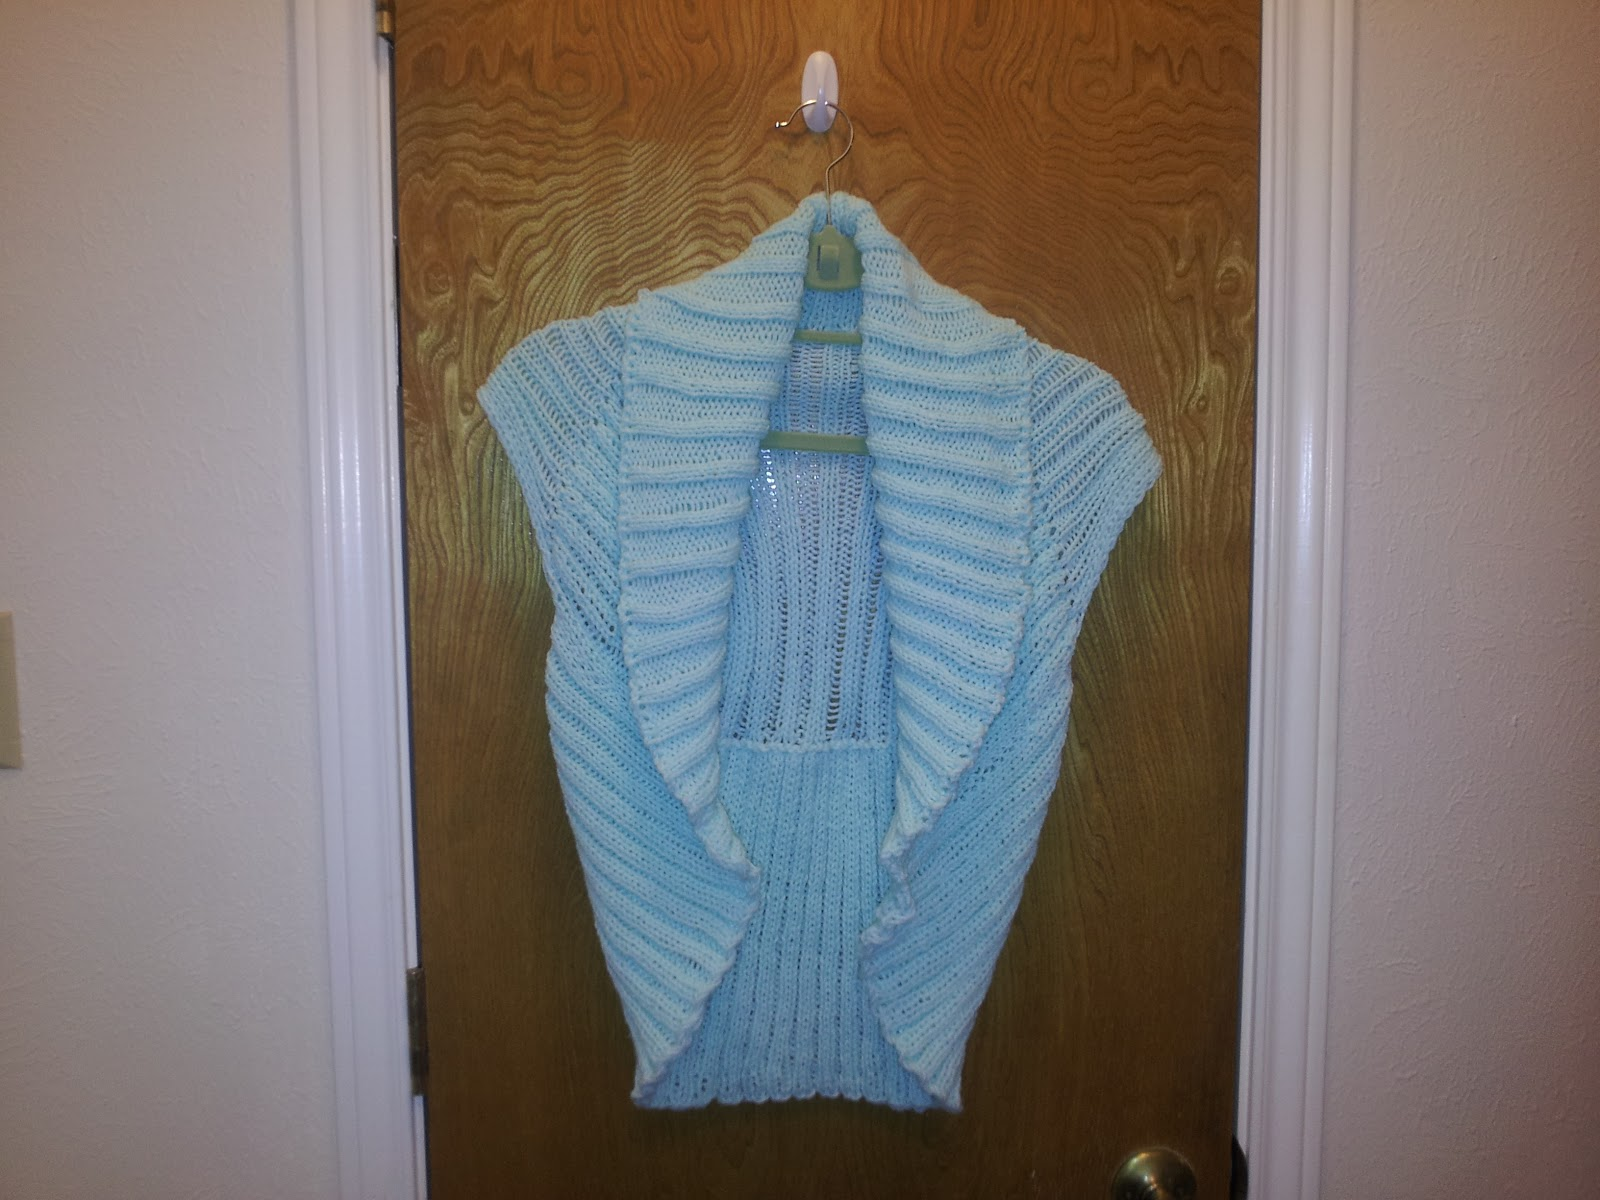 5d2fa19e376cad The vest is knit in a one piece (sort of) rectangle